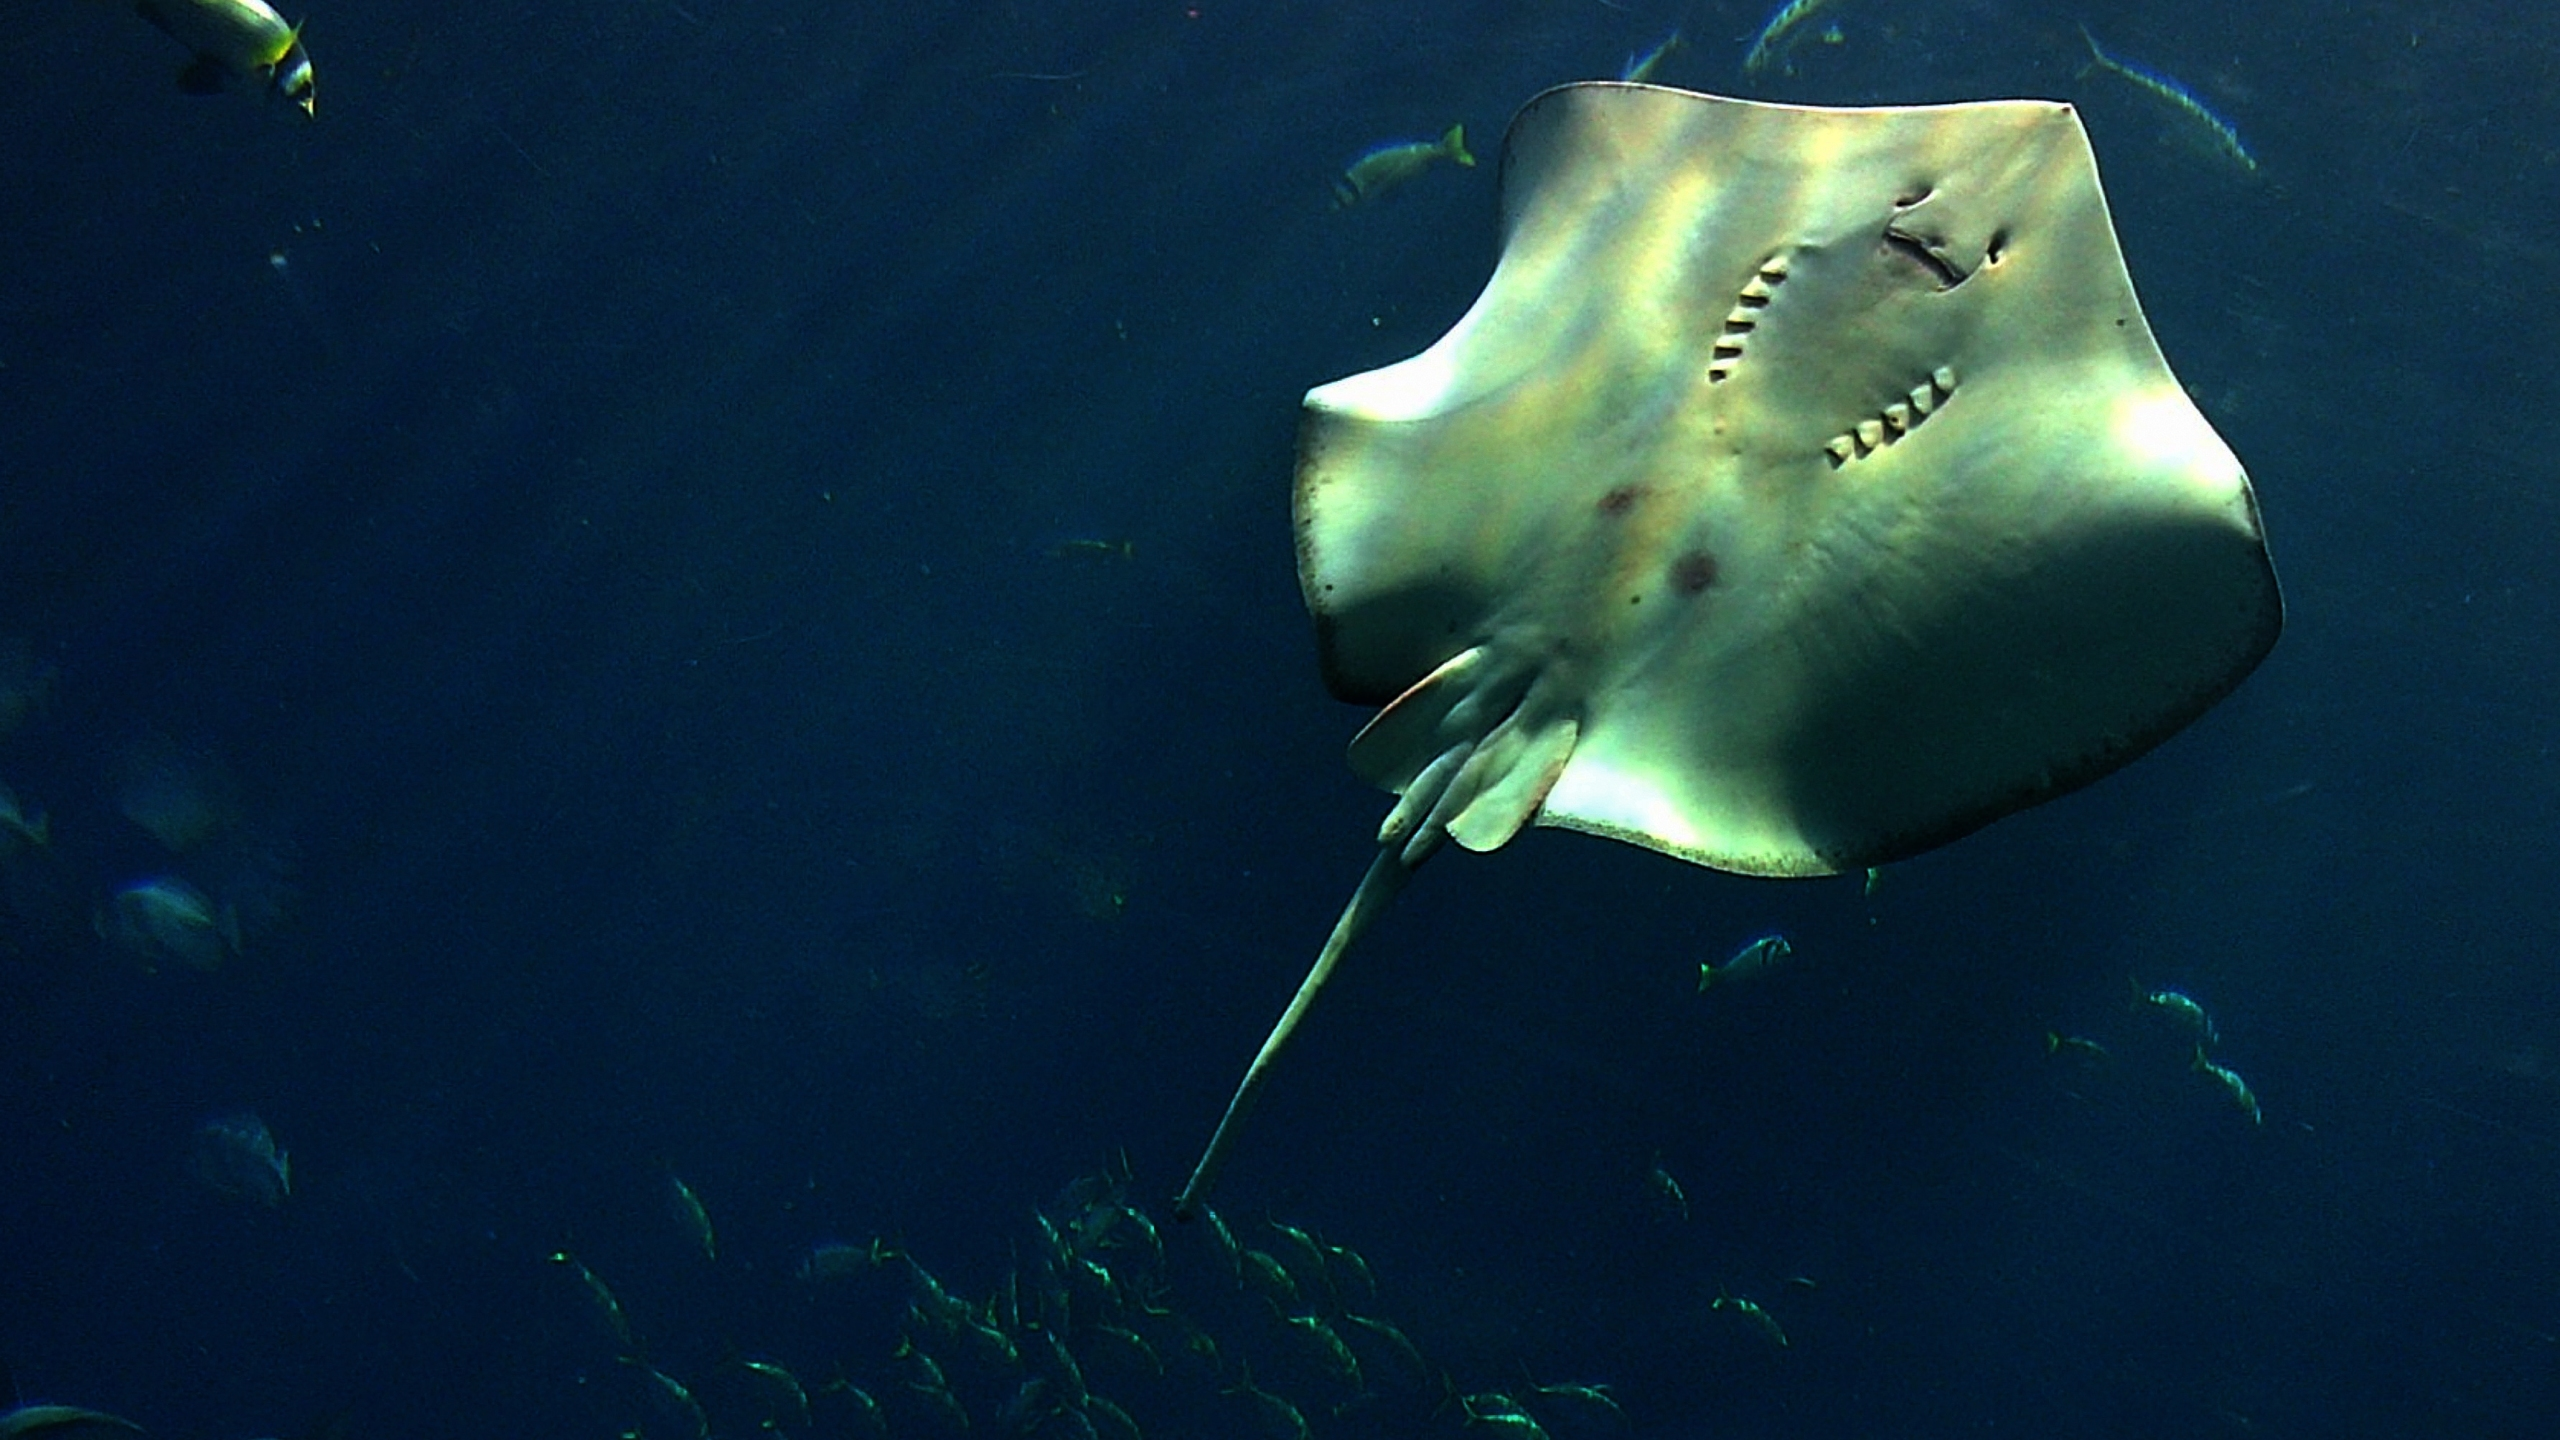 A stingray swims in an aquarium in Dubai on Oct. 10, 2013. (Marwan Naamani/AFP/Getty Images)